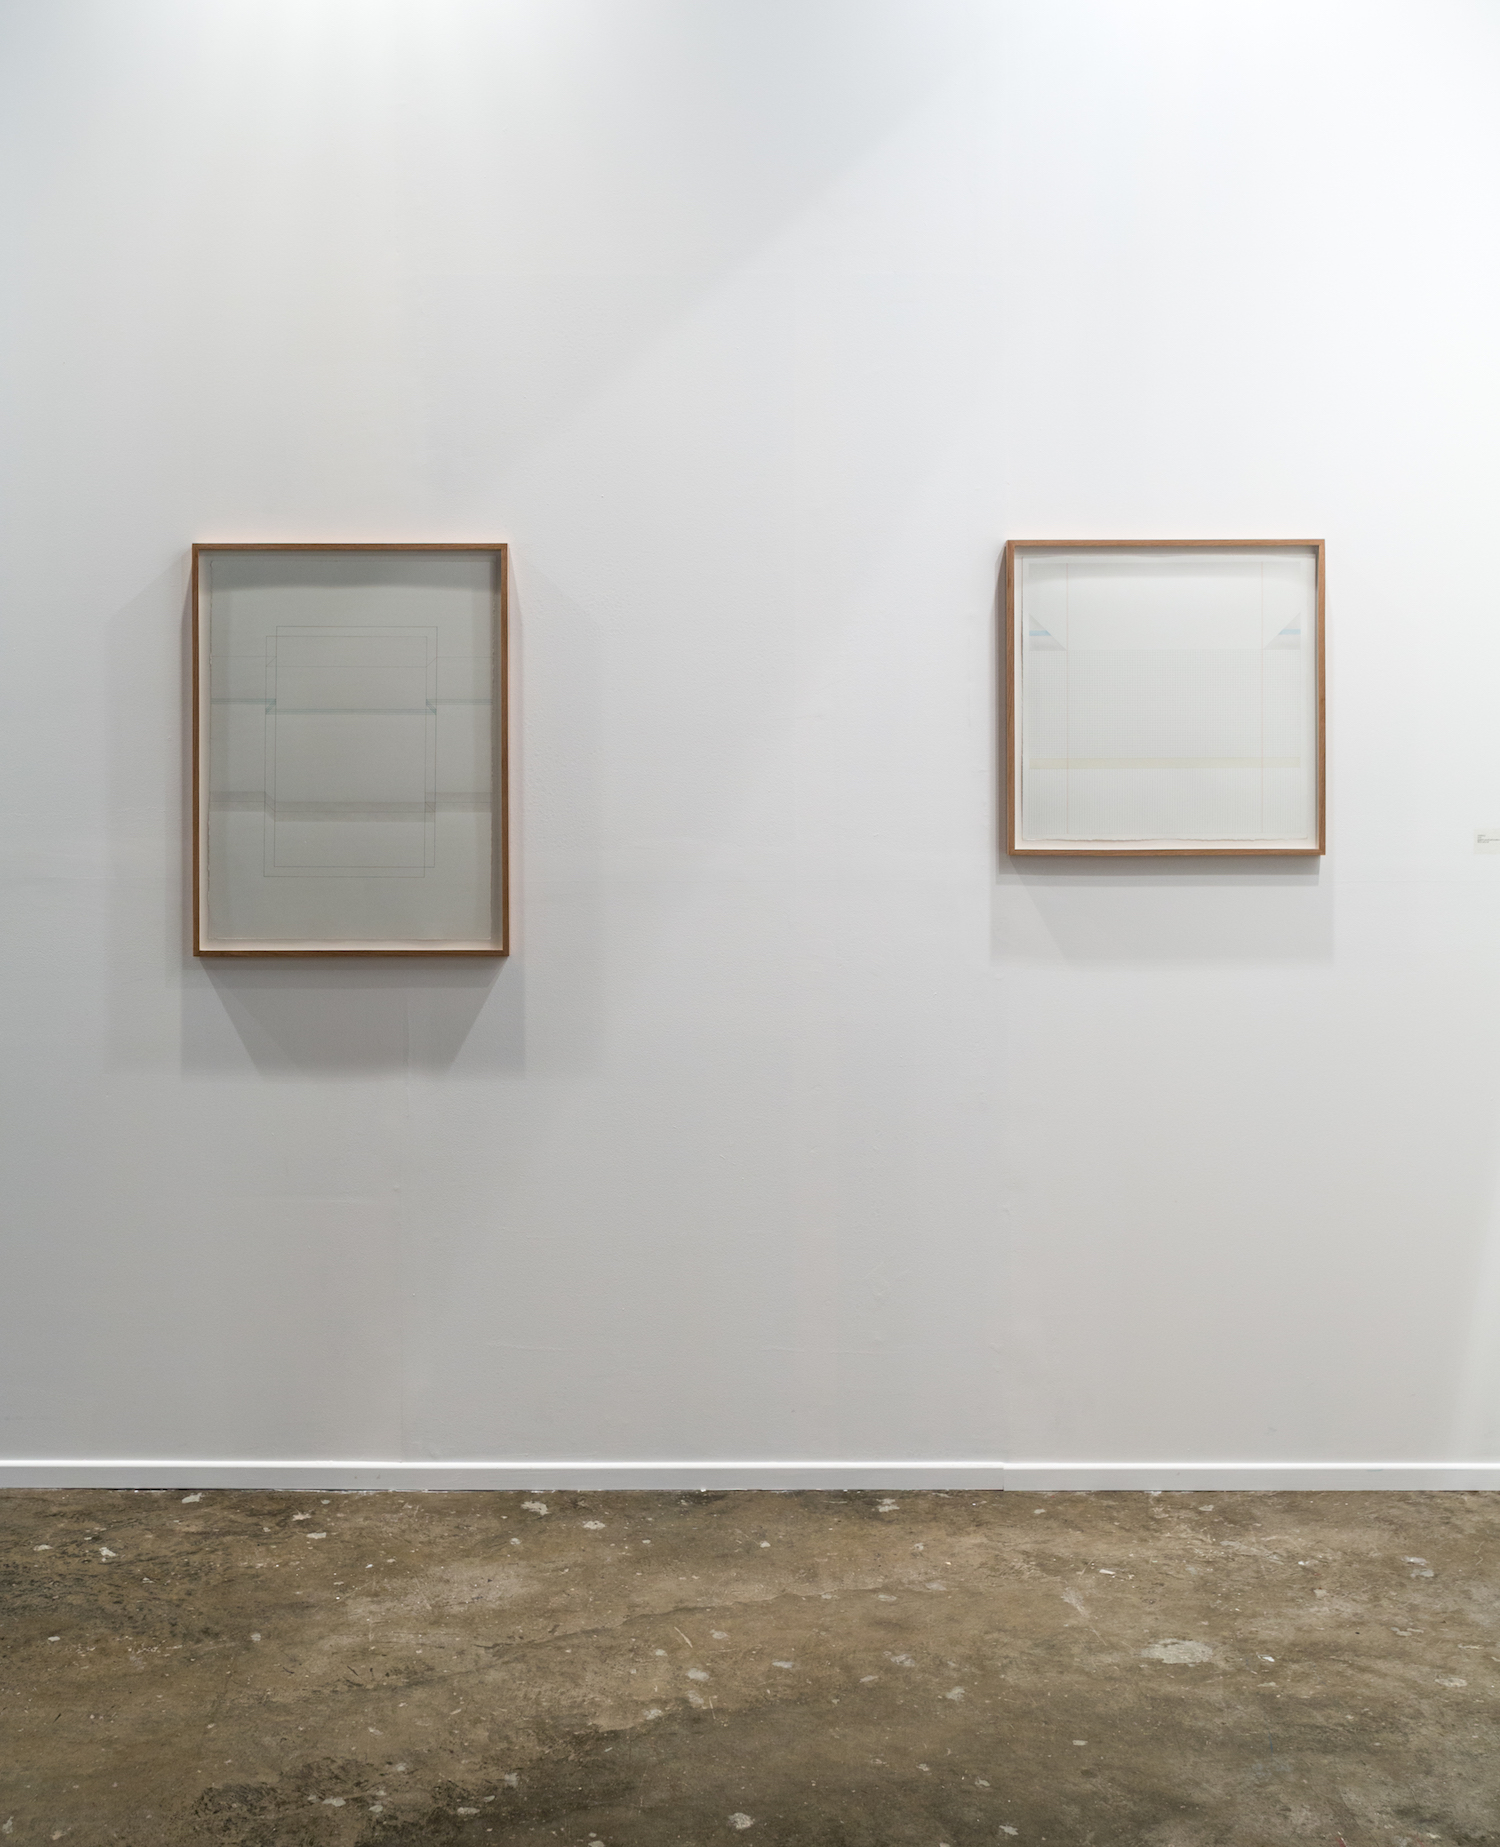 LEFT - RIGHT  LEFT: Untitled 4, 2016, graphite pencil, ballpoint pen and acrylics on paper, 76 x 56.5 cm  //  RIGHT: Untitled 2, 2016, graphite pencil and acrylics on paper, 56.5 x 56.5 cm